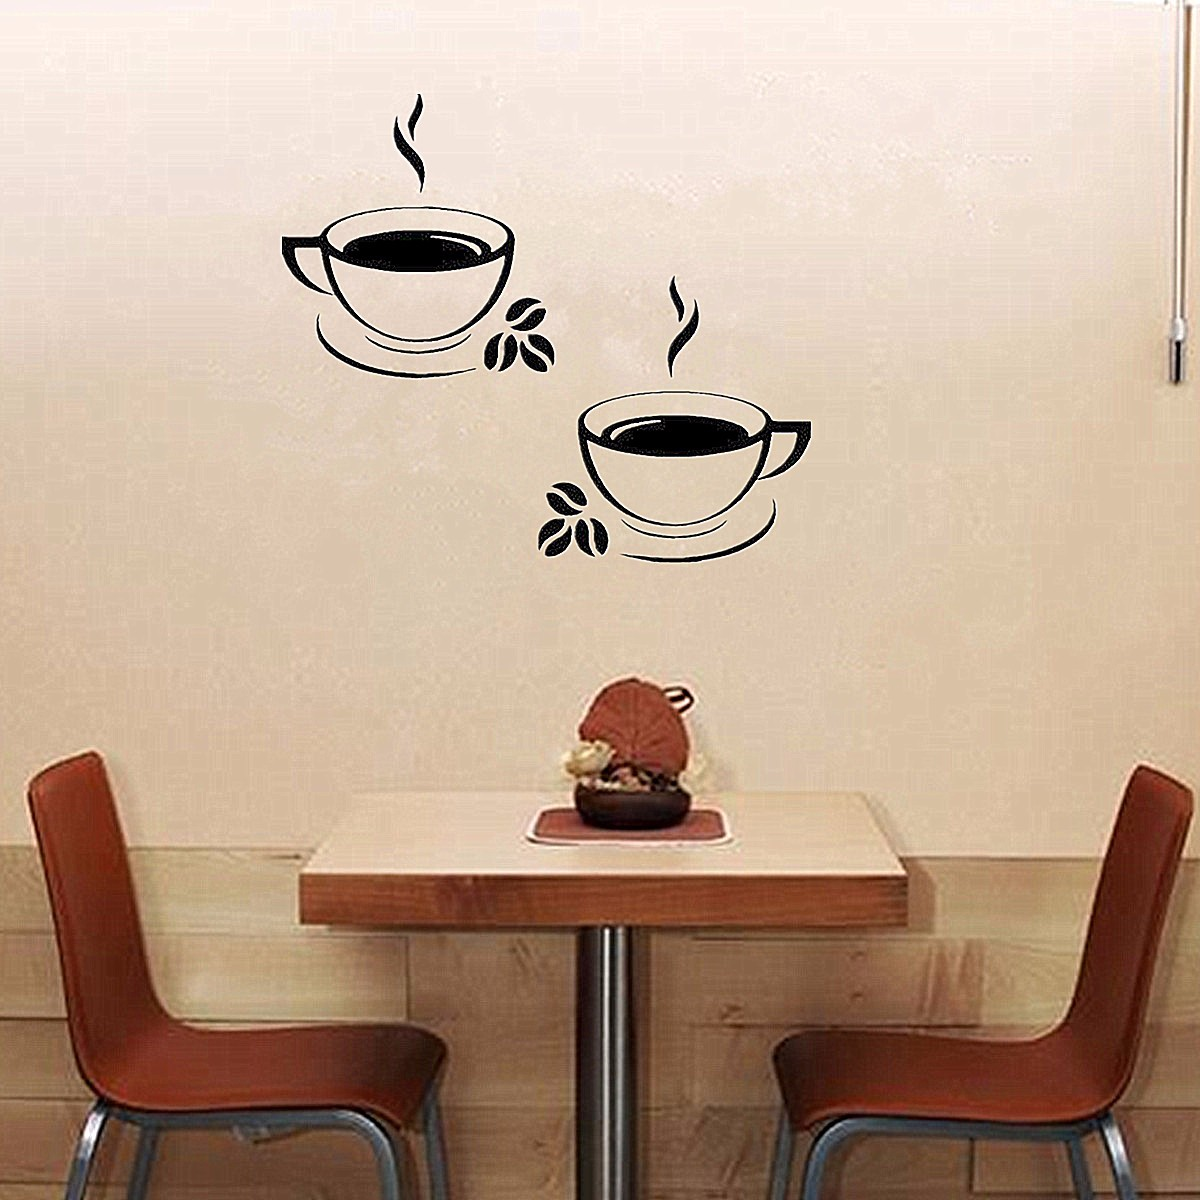 Clearance 2 Coffee Cups Kitchen Wall Stickers Art Vinyl Decal Restaurant Pub Cafe Home Decor Waterproof